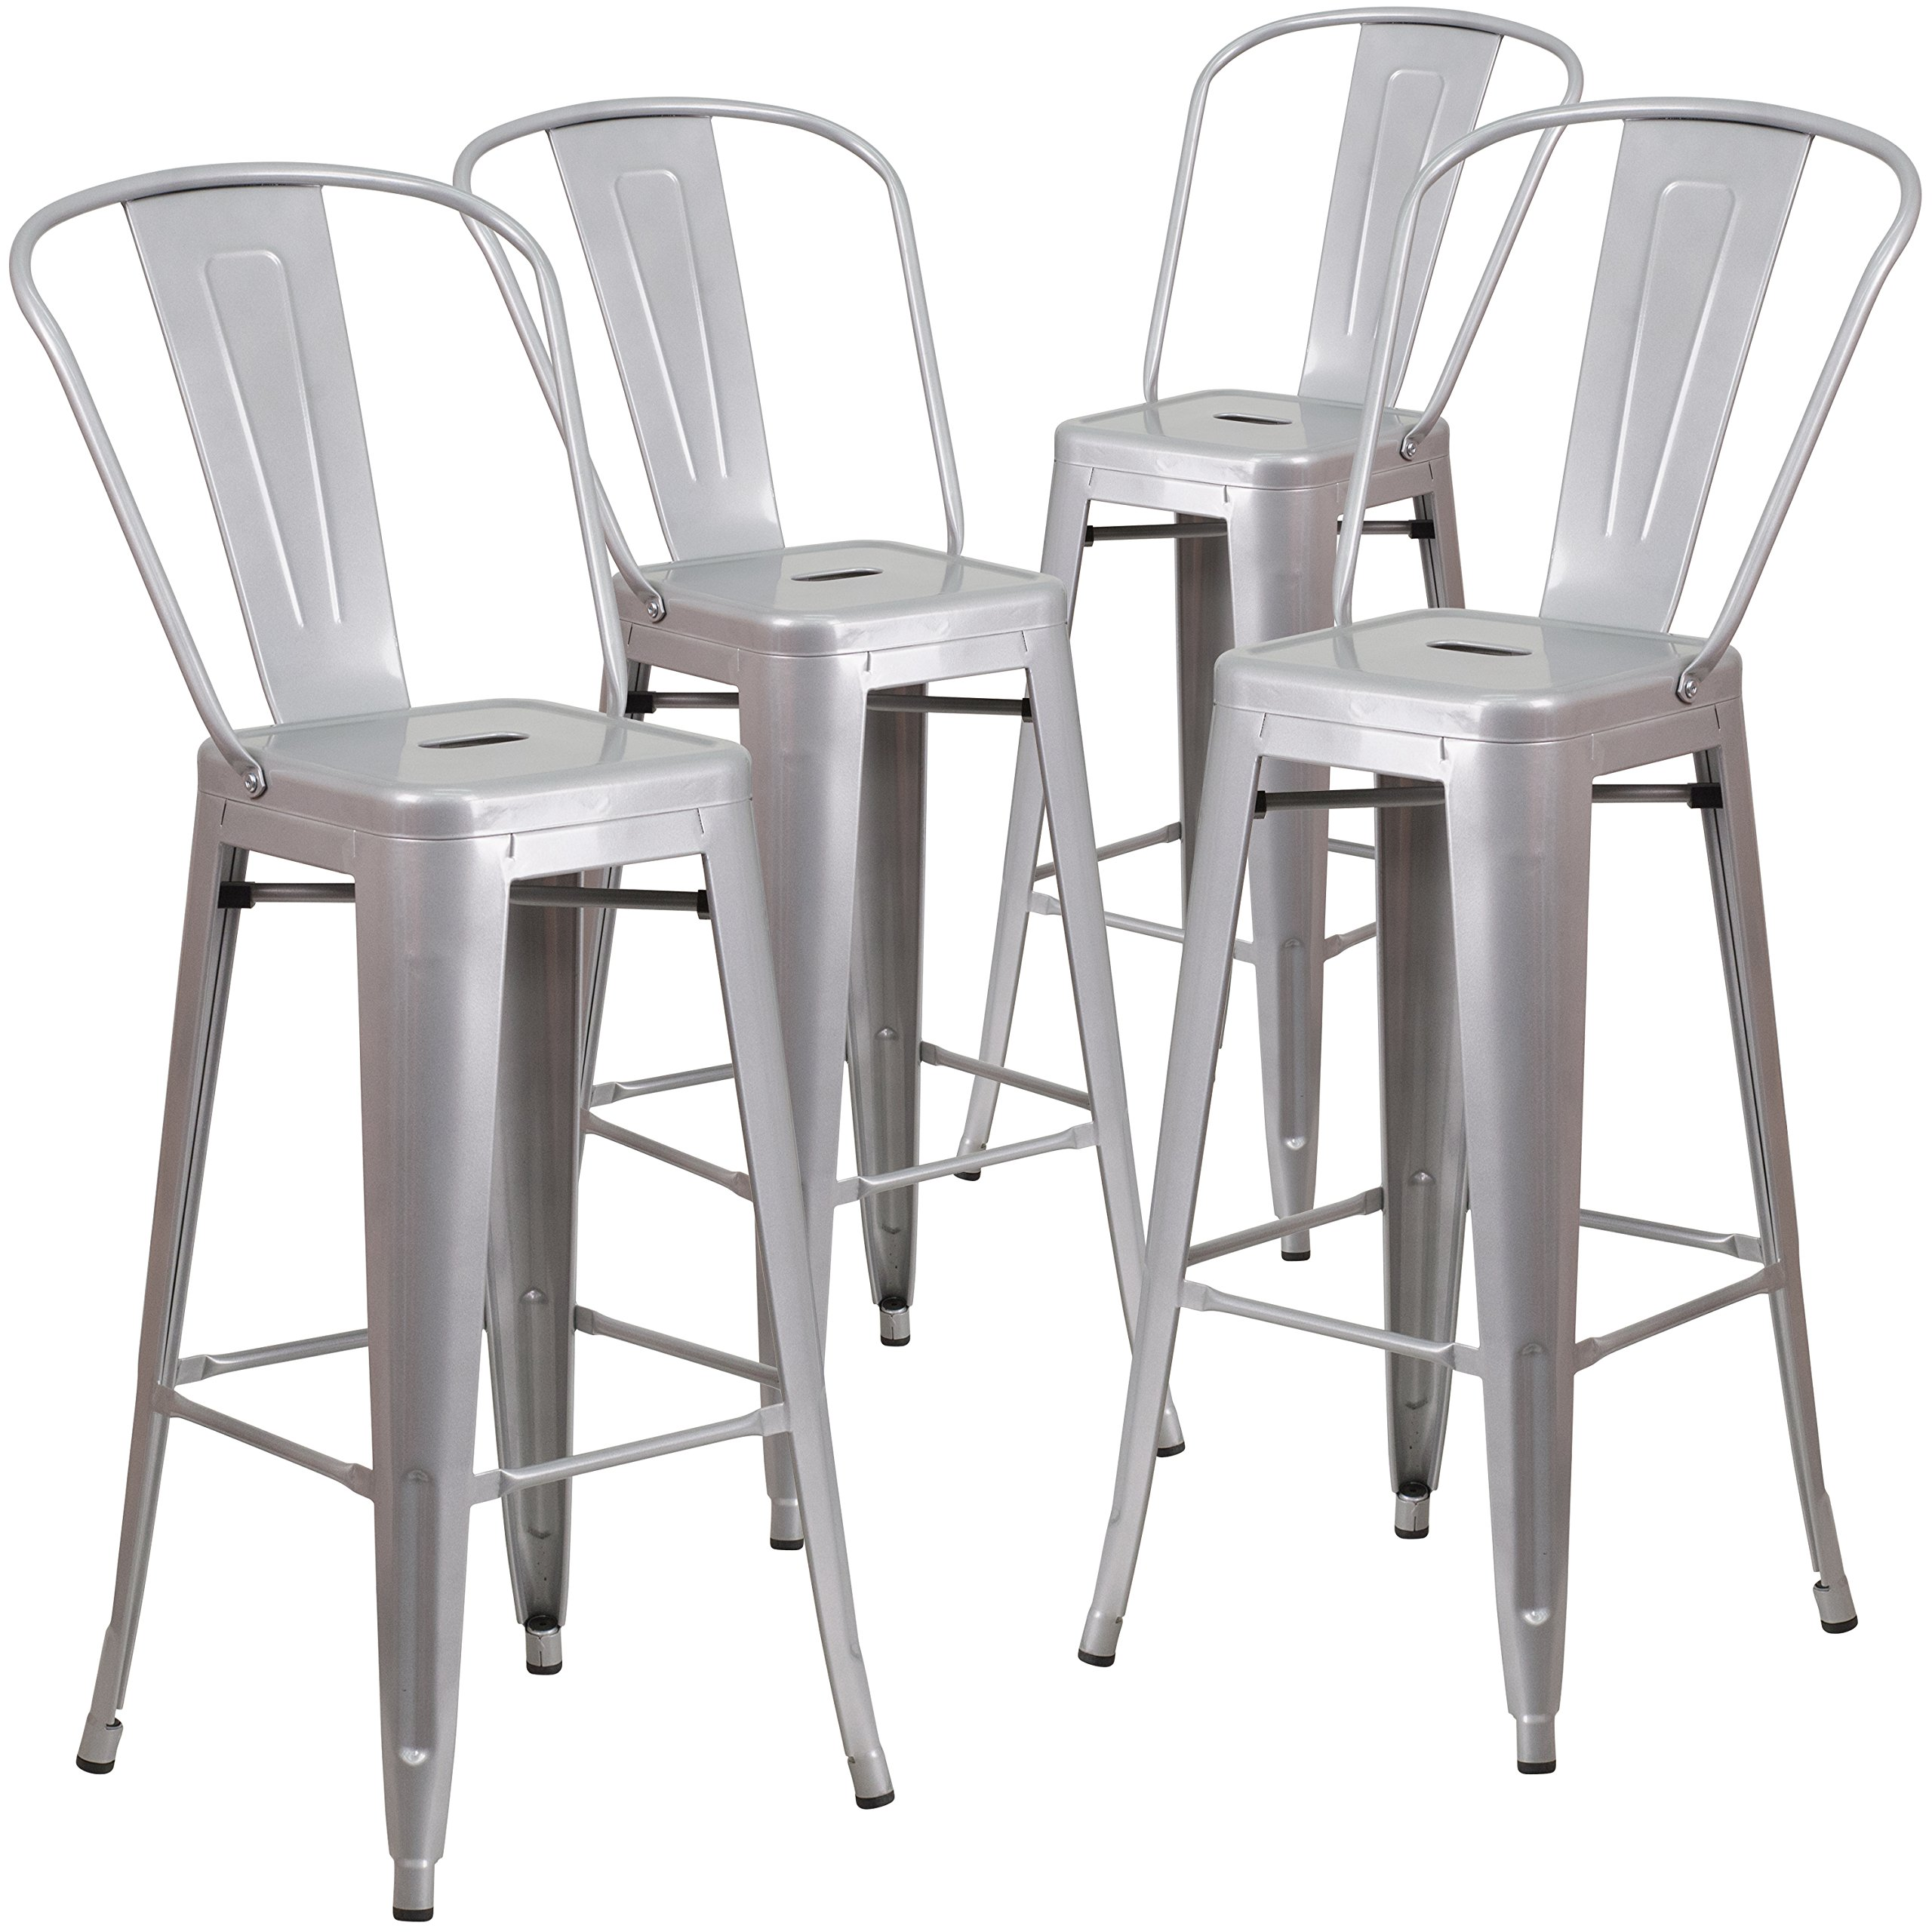 Flash Furniture 4 Pk. 30'' High Silver Metal Indoor-Outdoor Barstool with Back